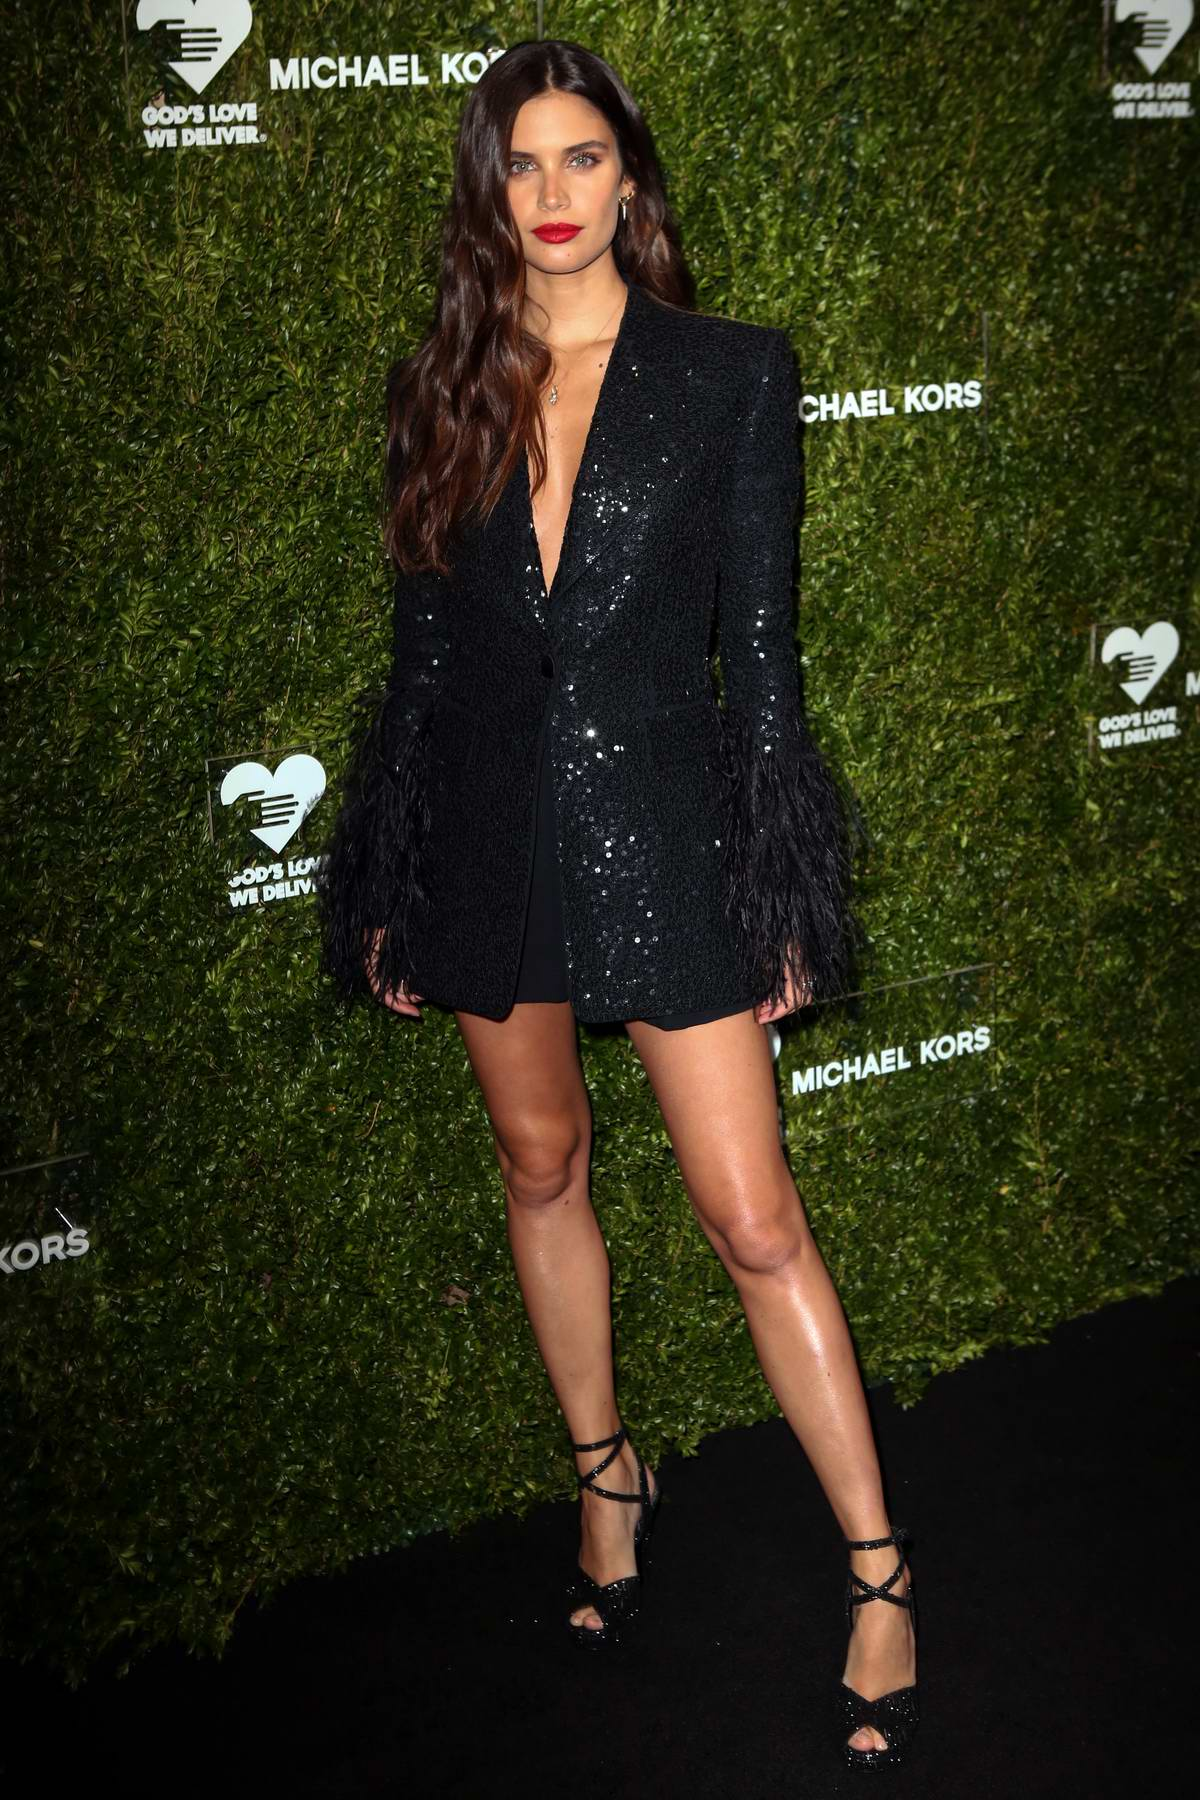 Sara Sampaio attends God's Love We Deliver 13th Annual Golden Heart Awards Celebration at Cipriani South Street in New York City